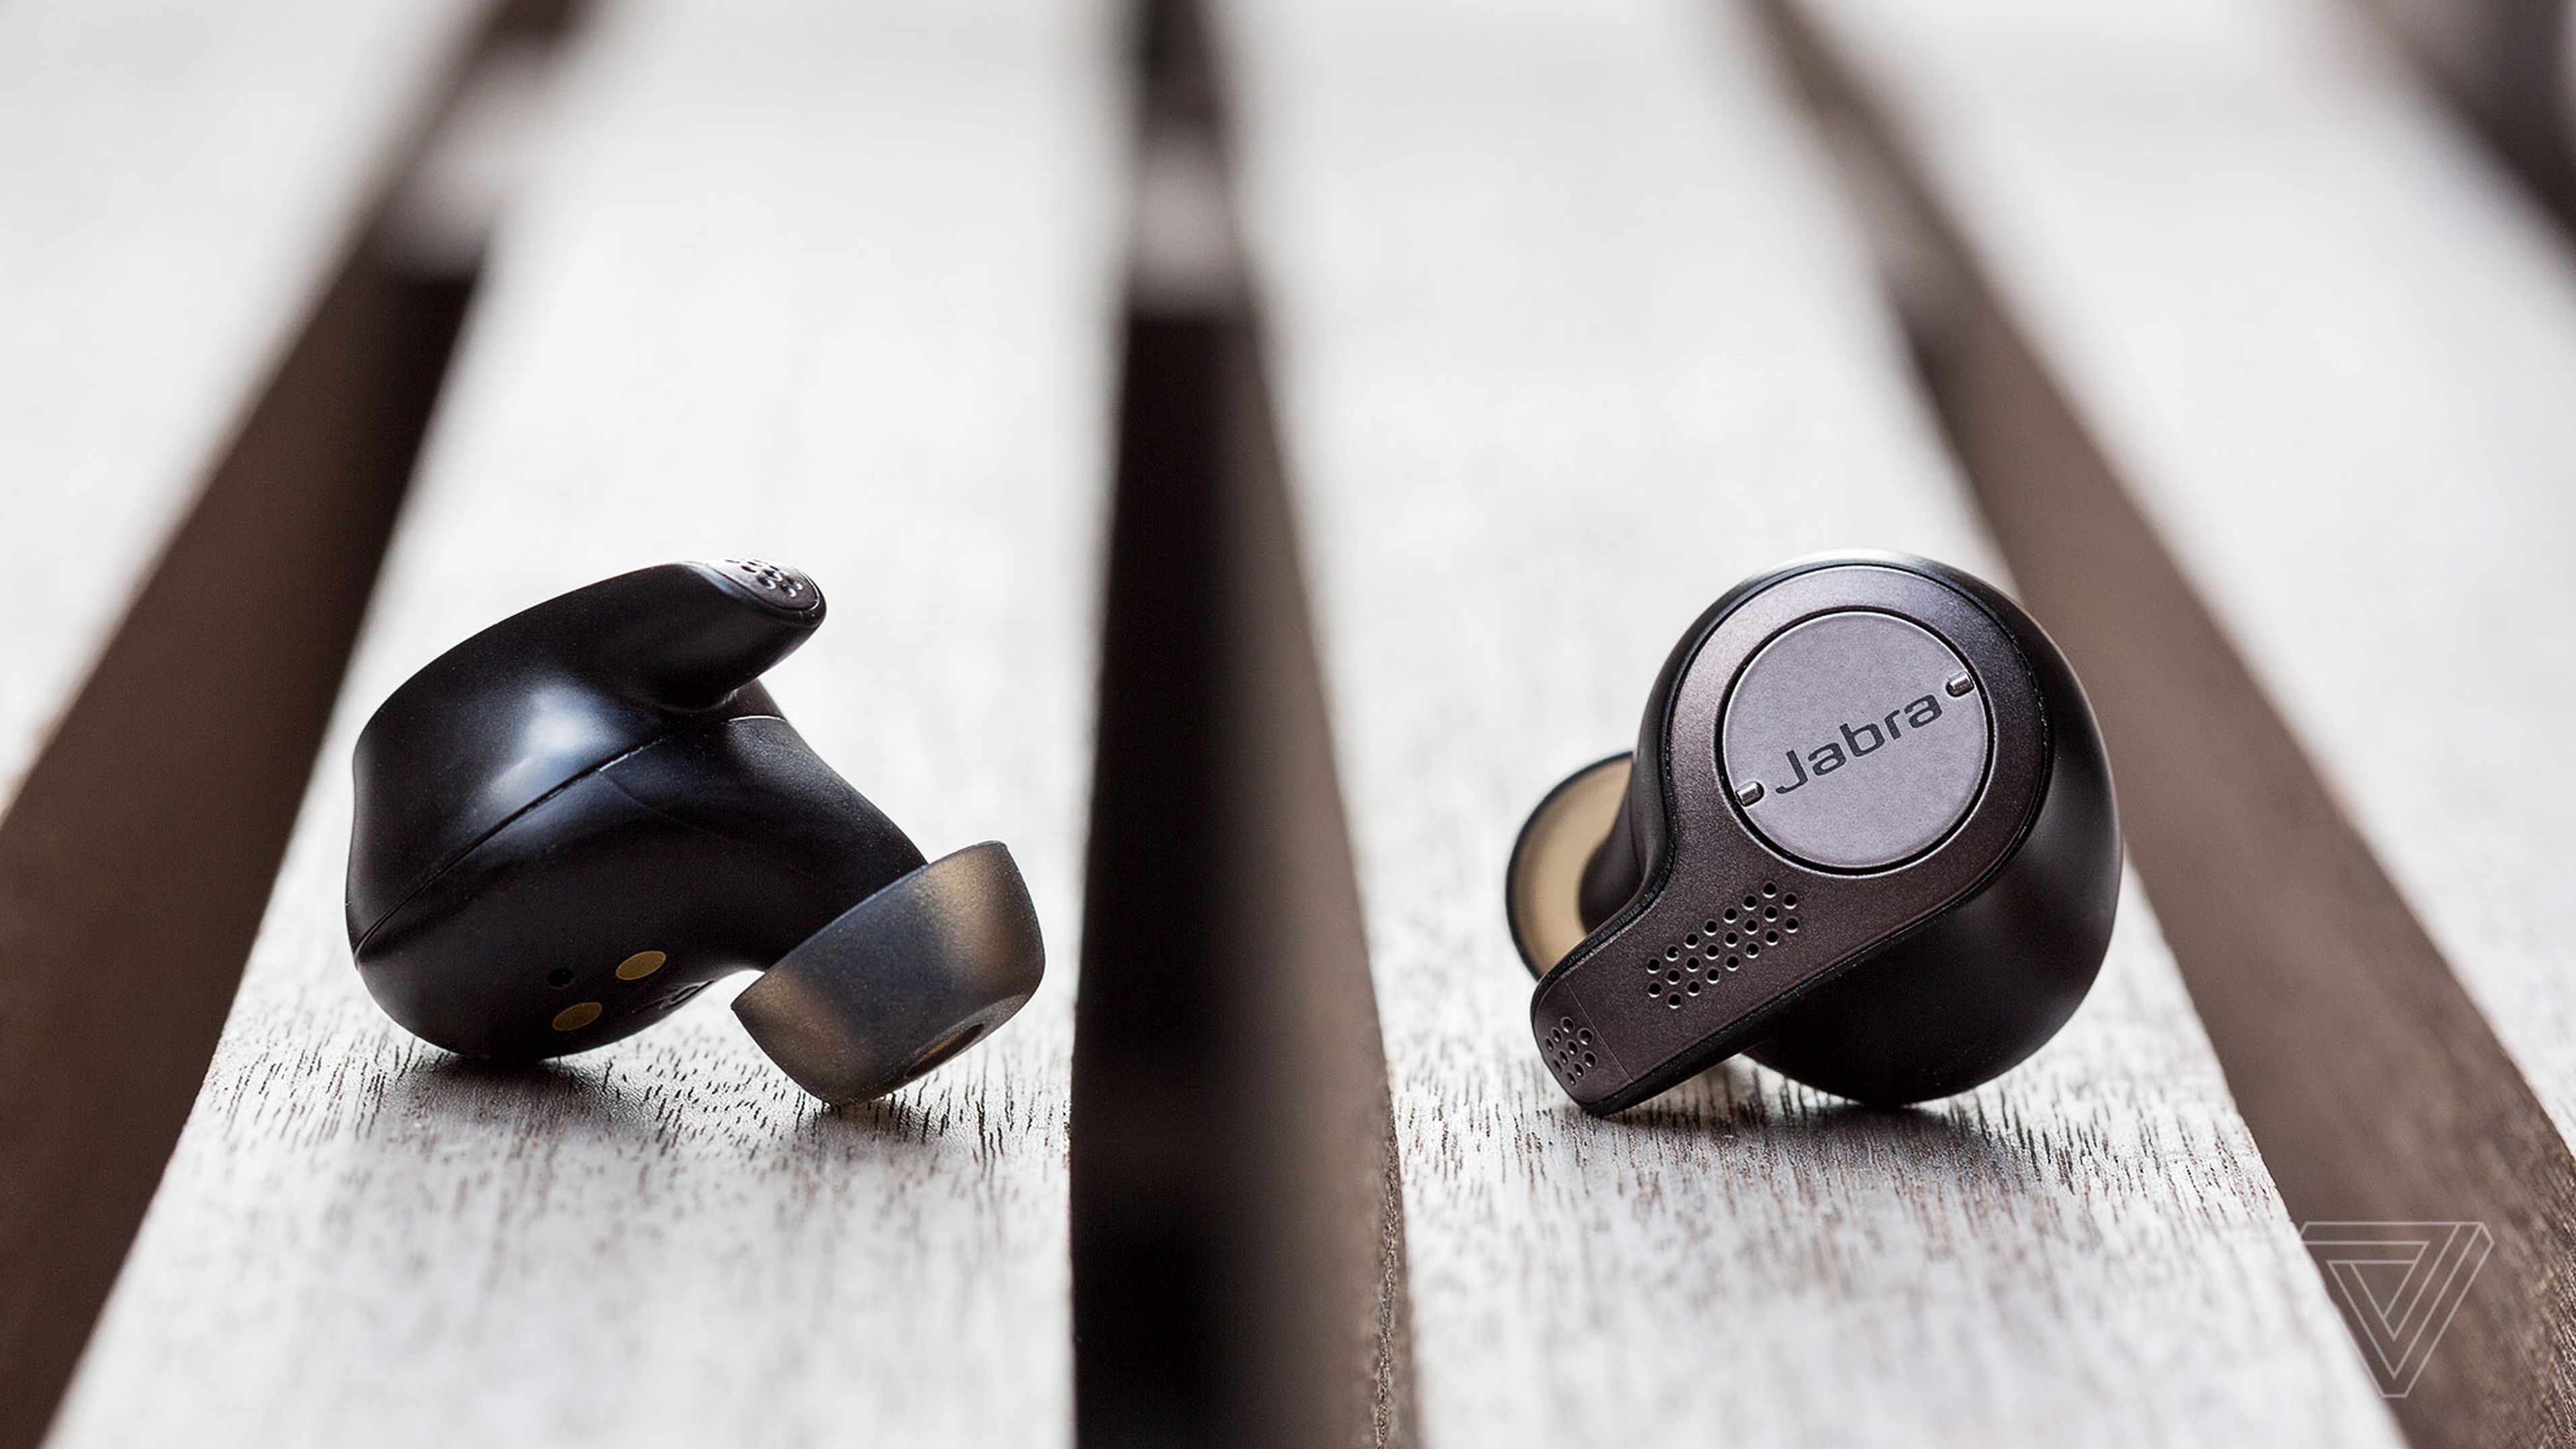 These Jabra wireless earbuds are the best alternative to